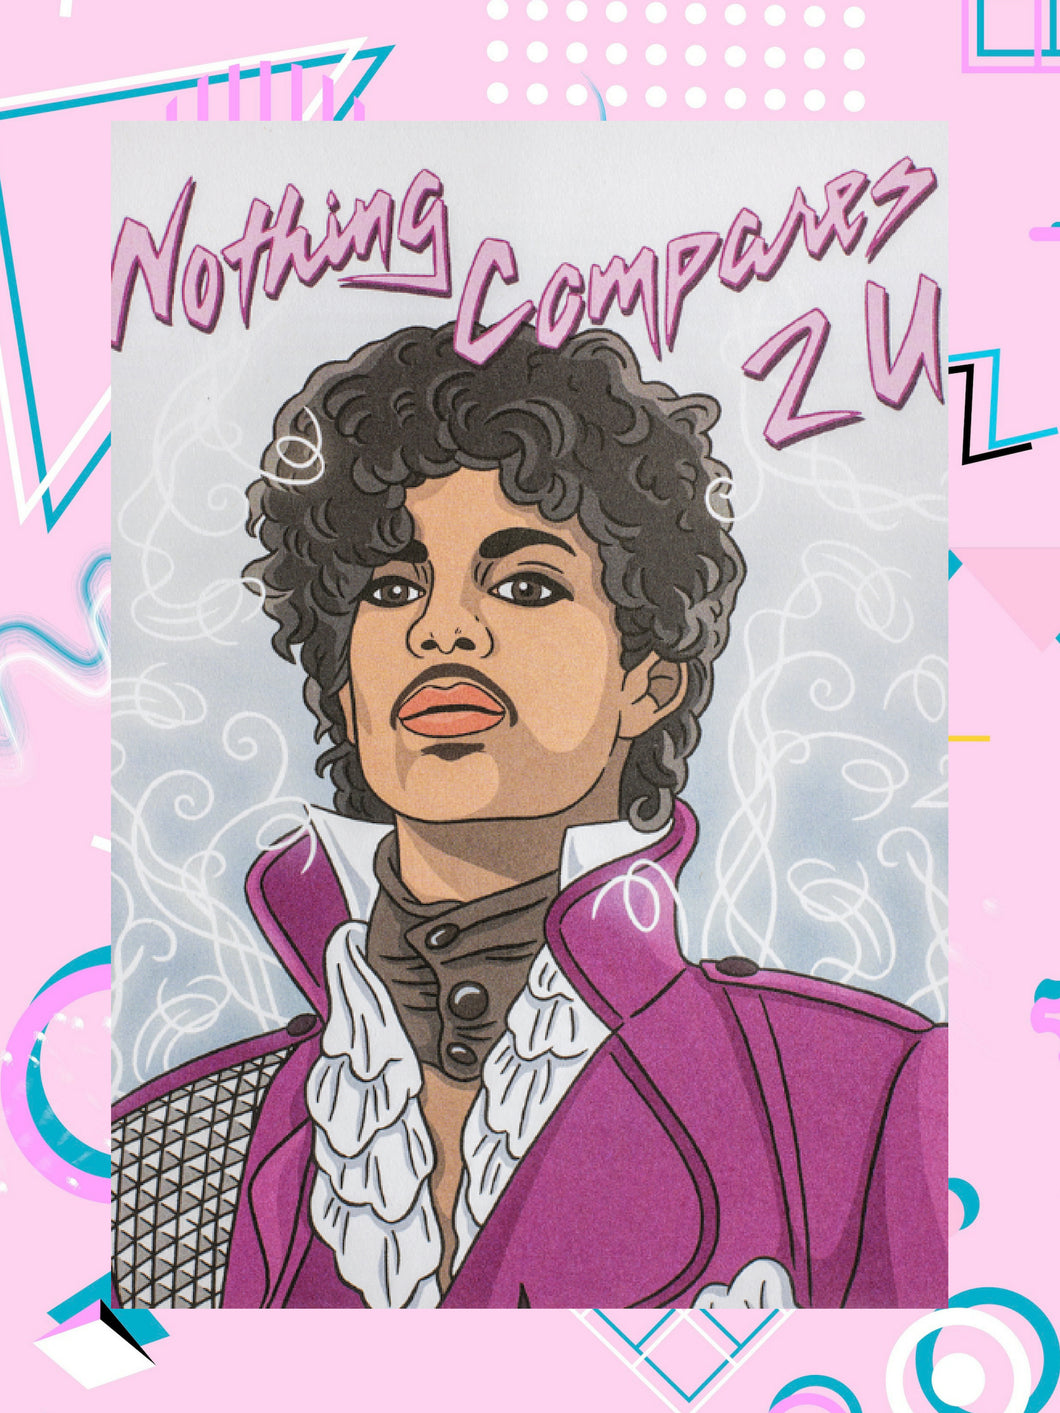 blank greeting card featuring drawing of the artist formerly known as Prince that says on the outside, Nothing Compares 2 U